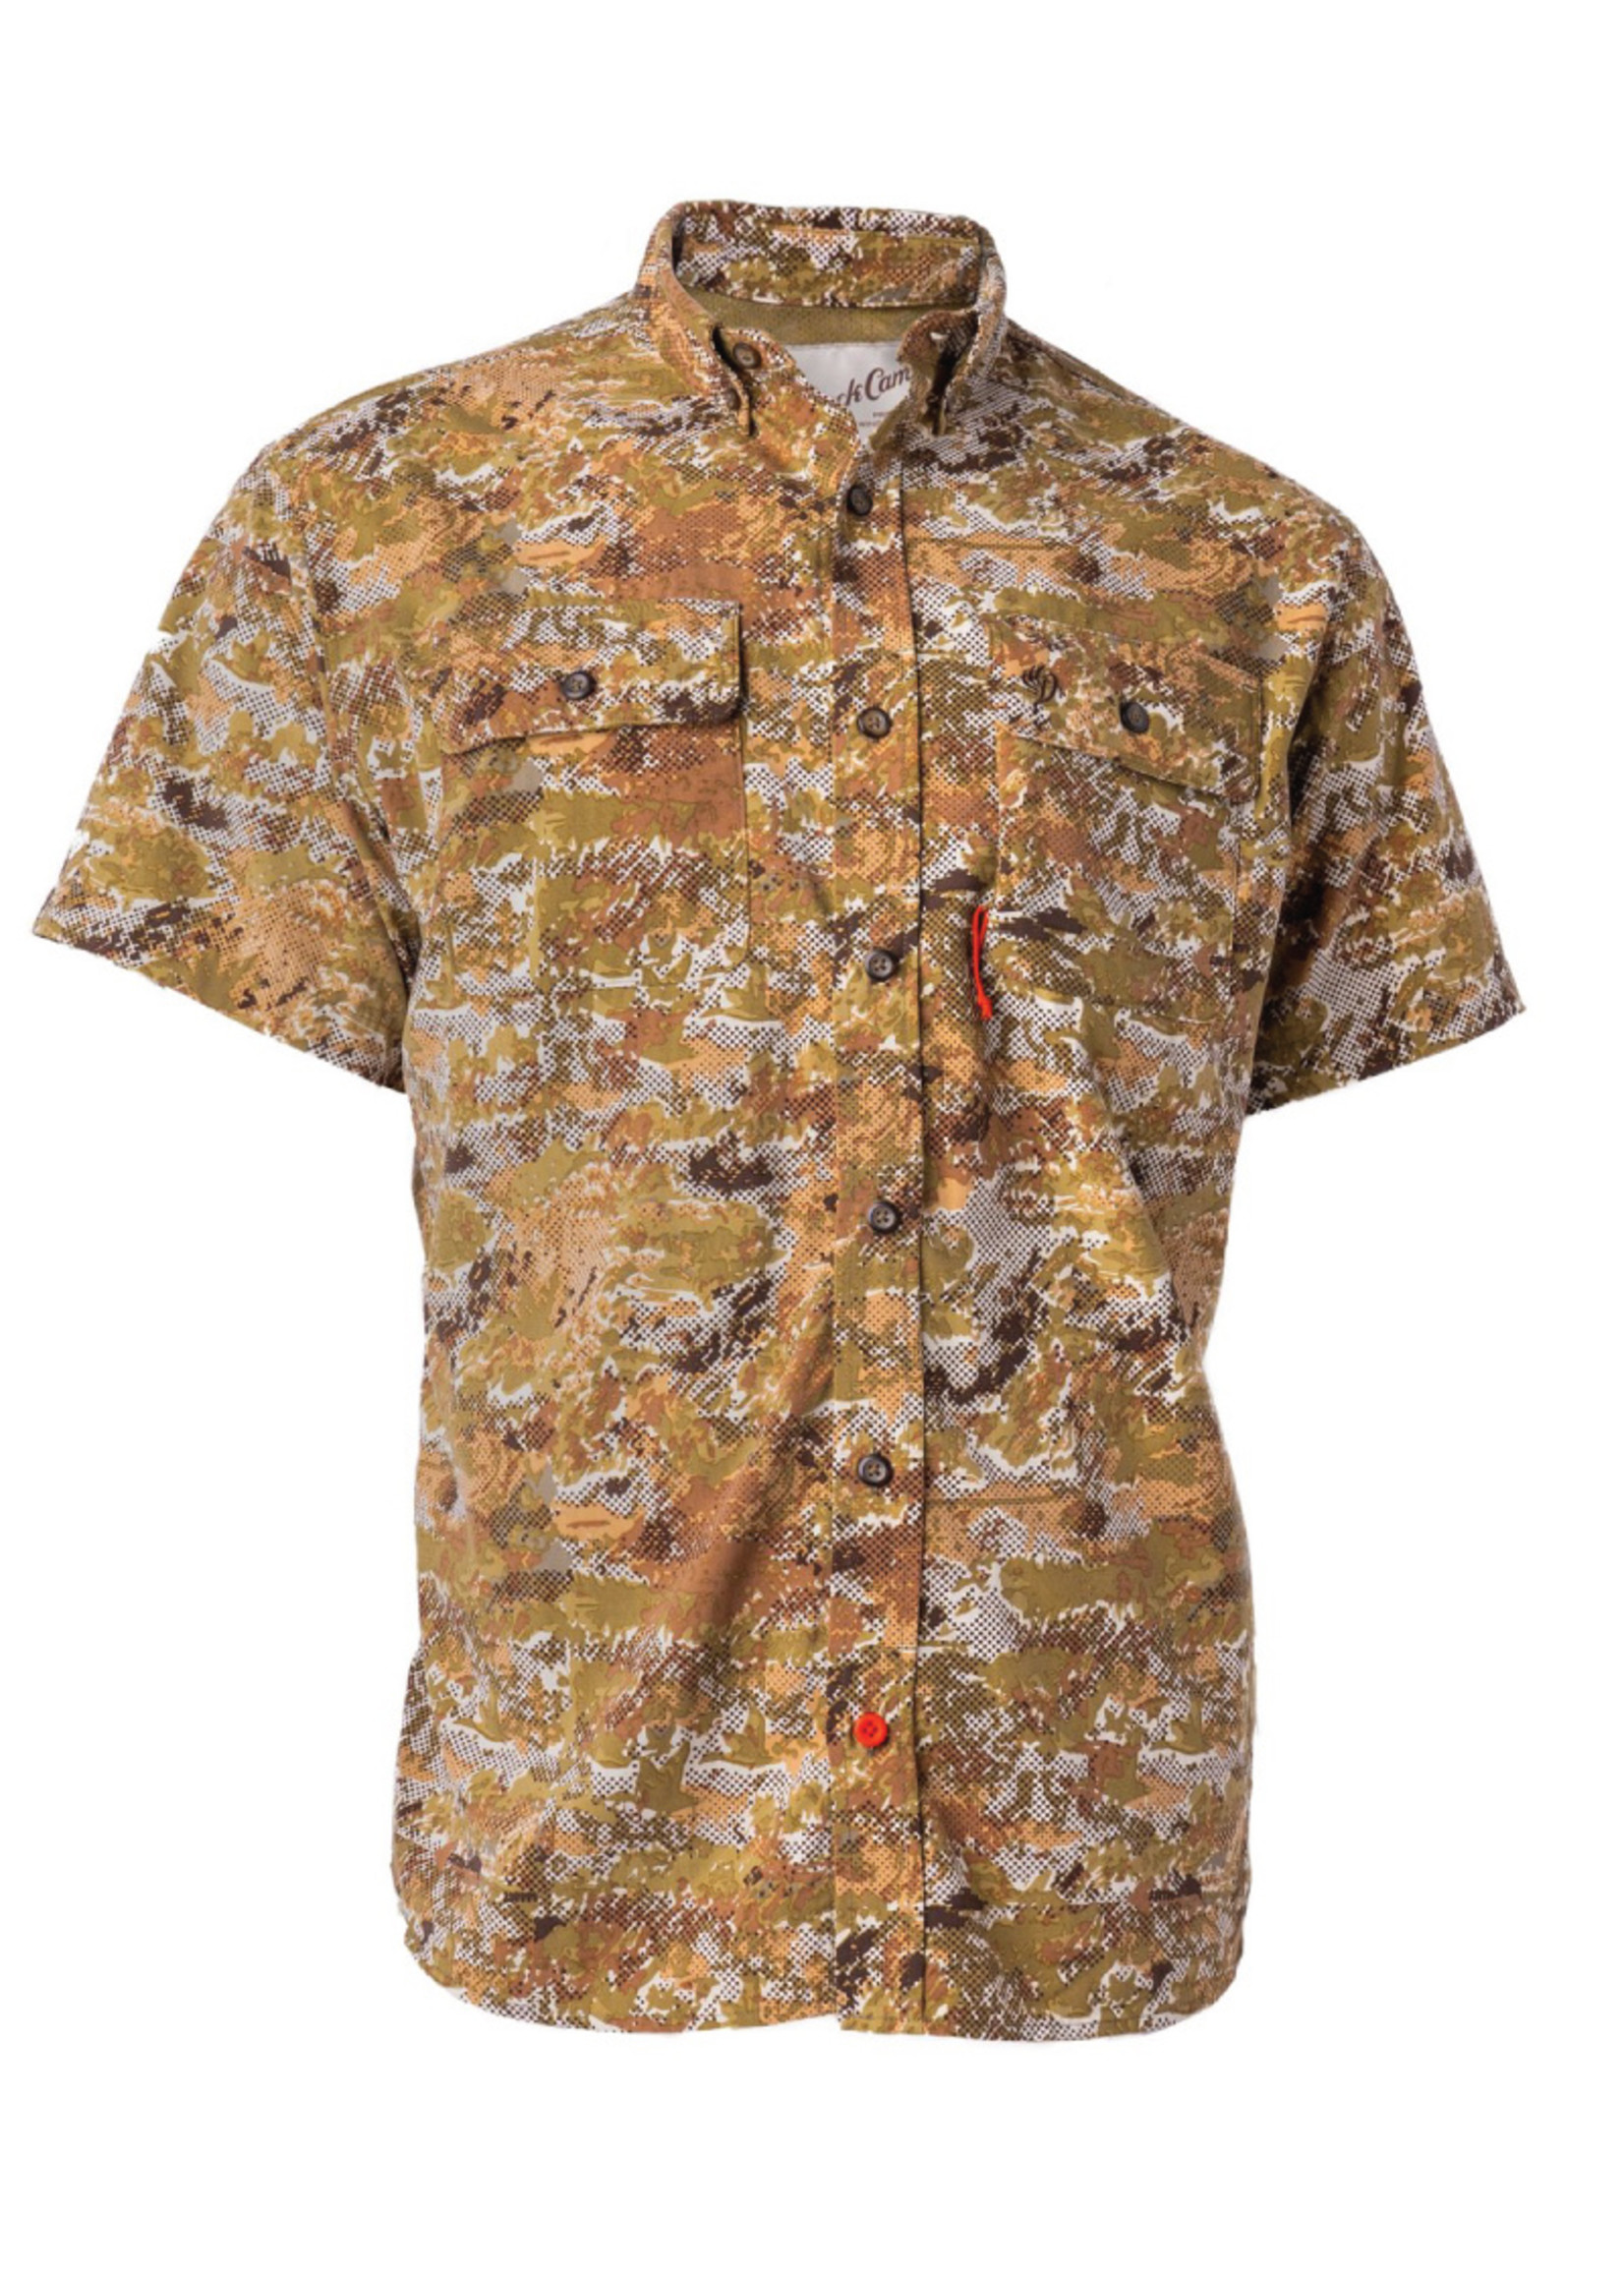 Duck Camp Lightweight Hunting Shirt Short Sleeve